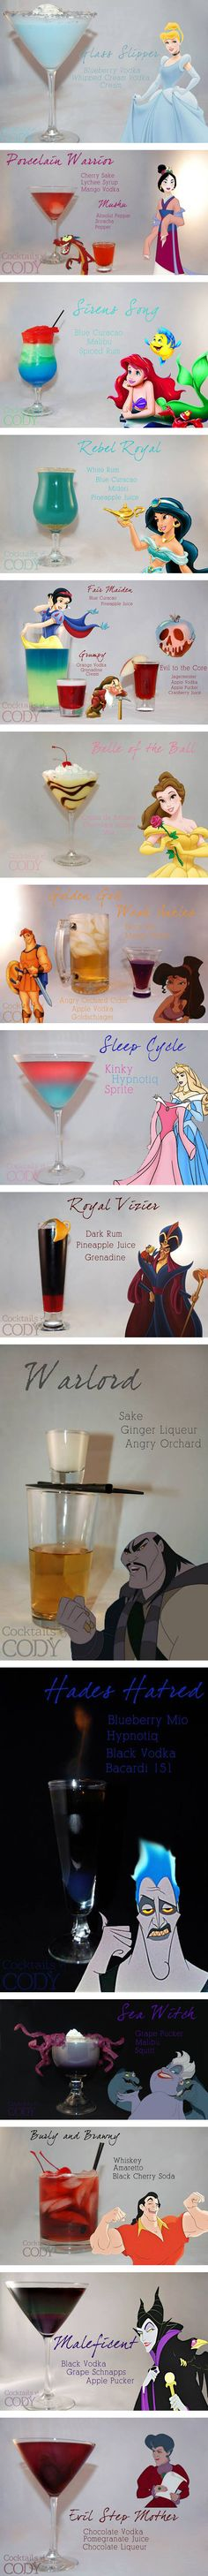 Disney princess themed cocktails. Must make them all...yes!!!!